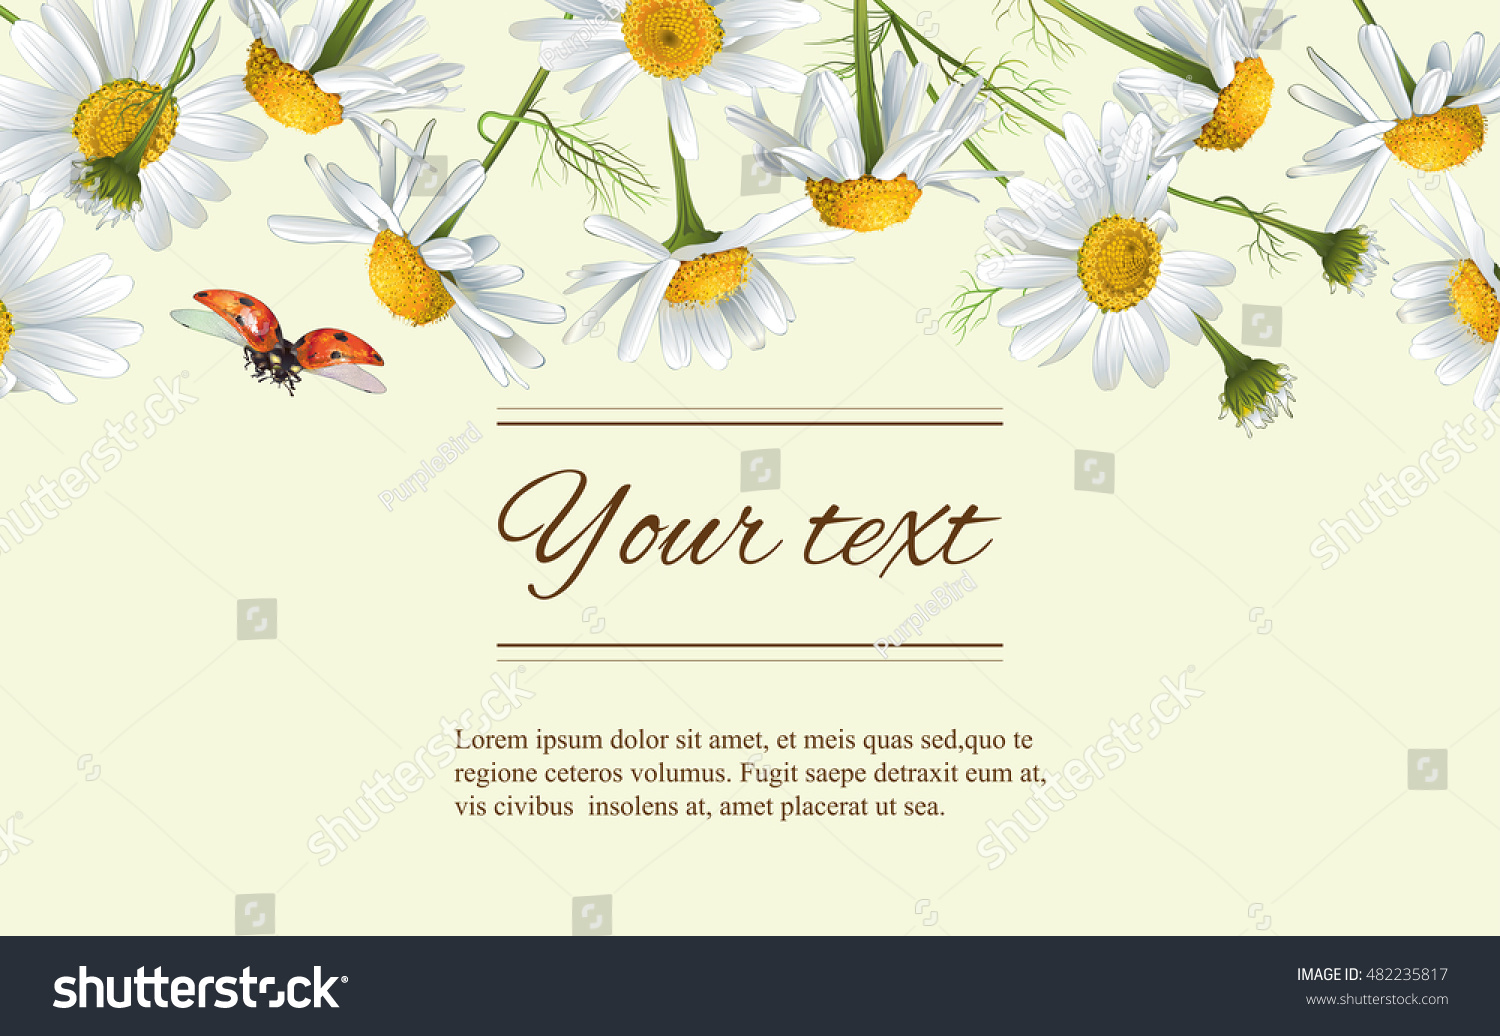 Vector Chamomile Flowers Horizontal Banner Design For Tea Natural Cosmetics Beauty Store